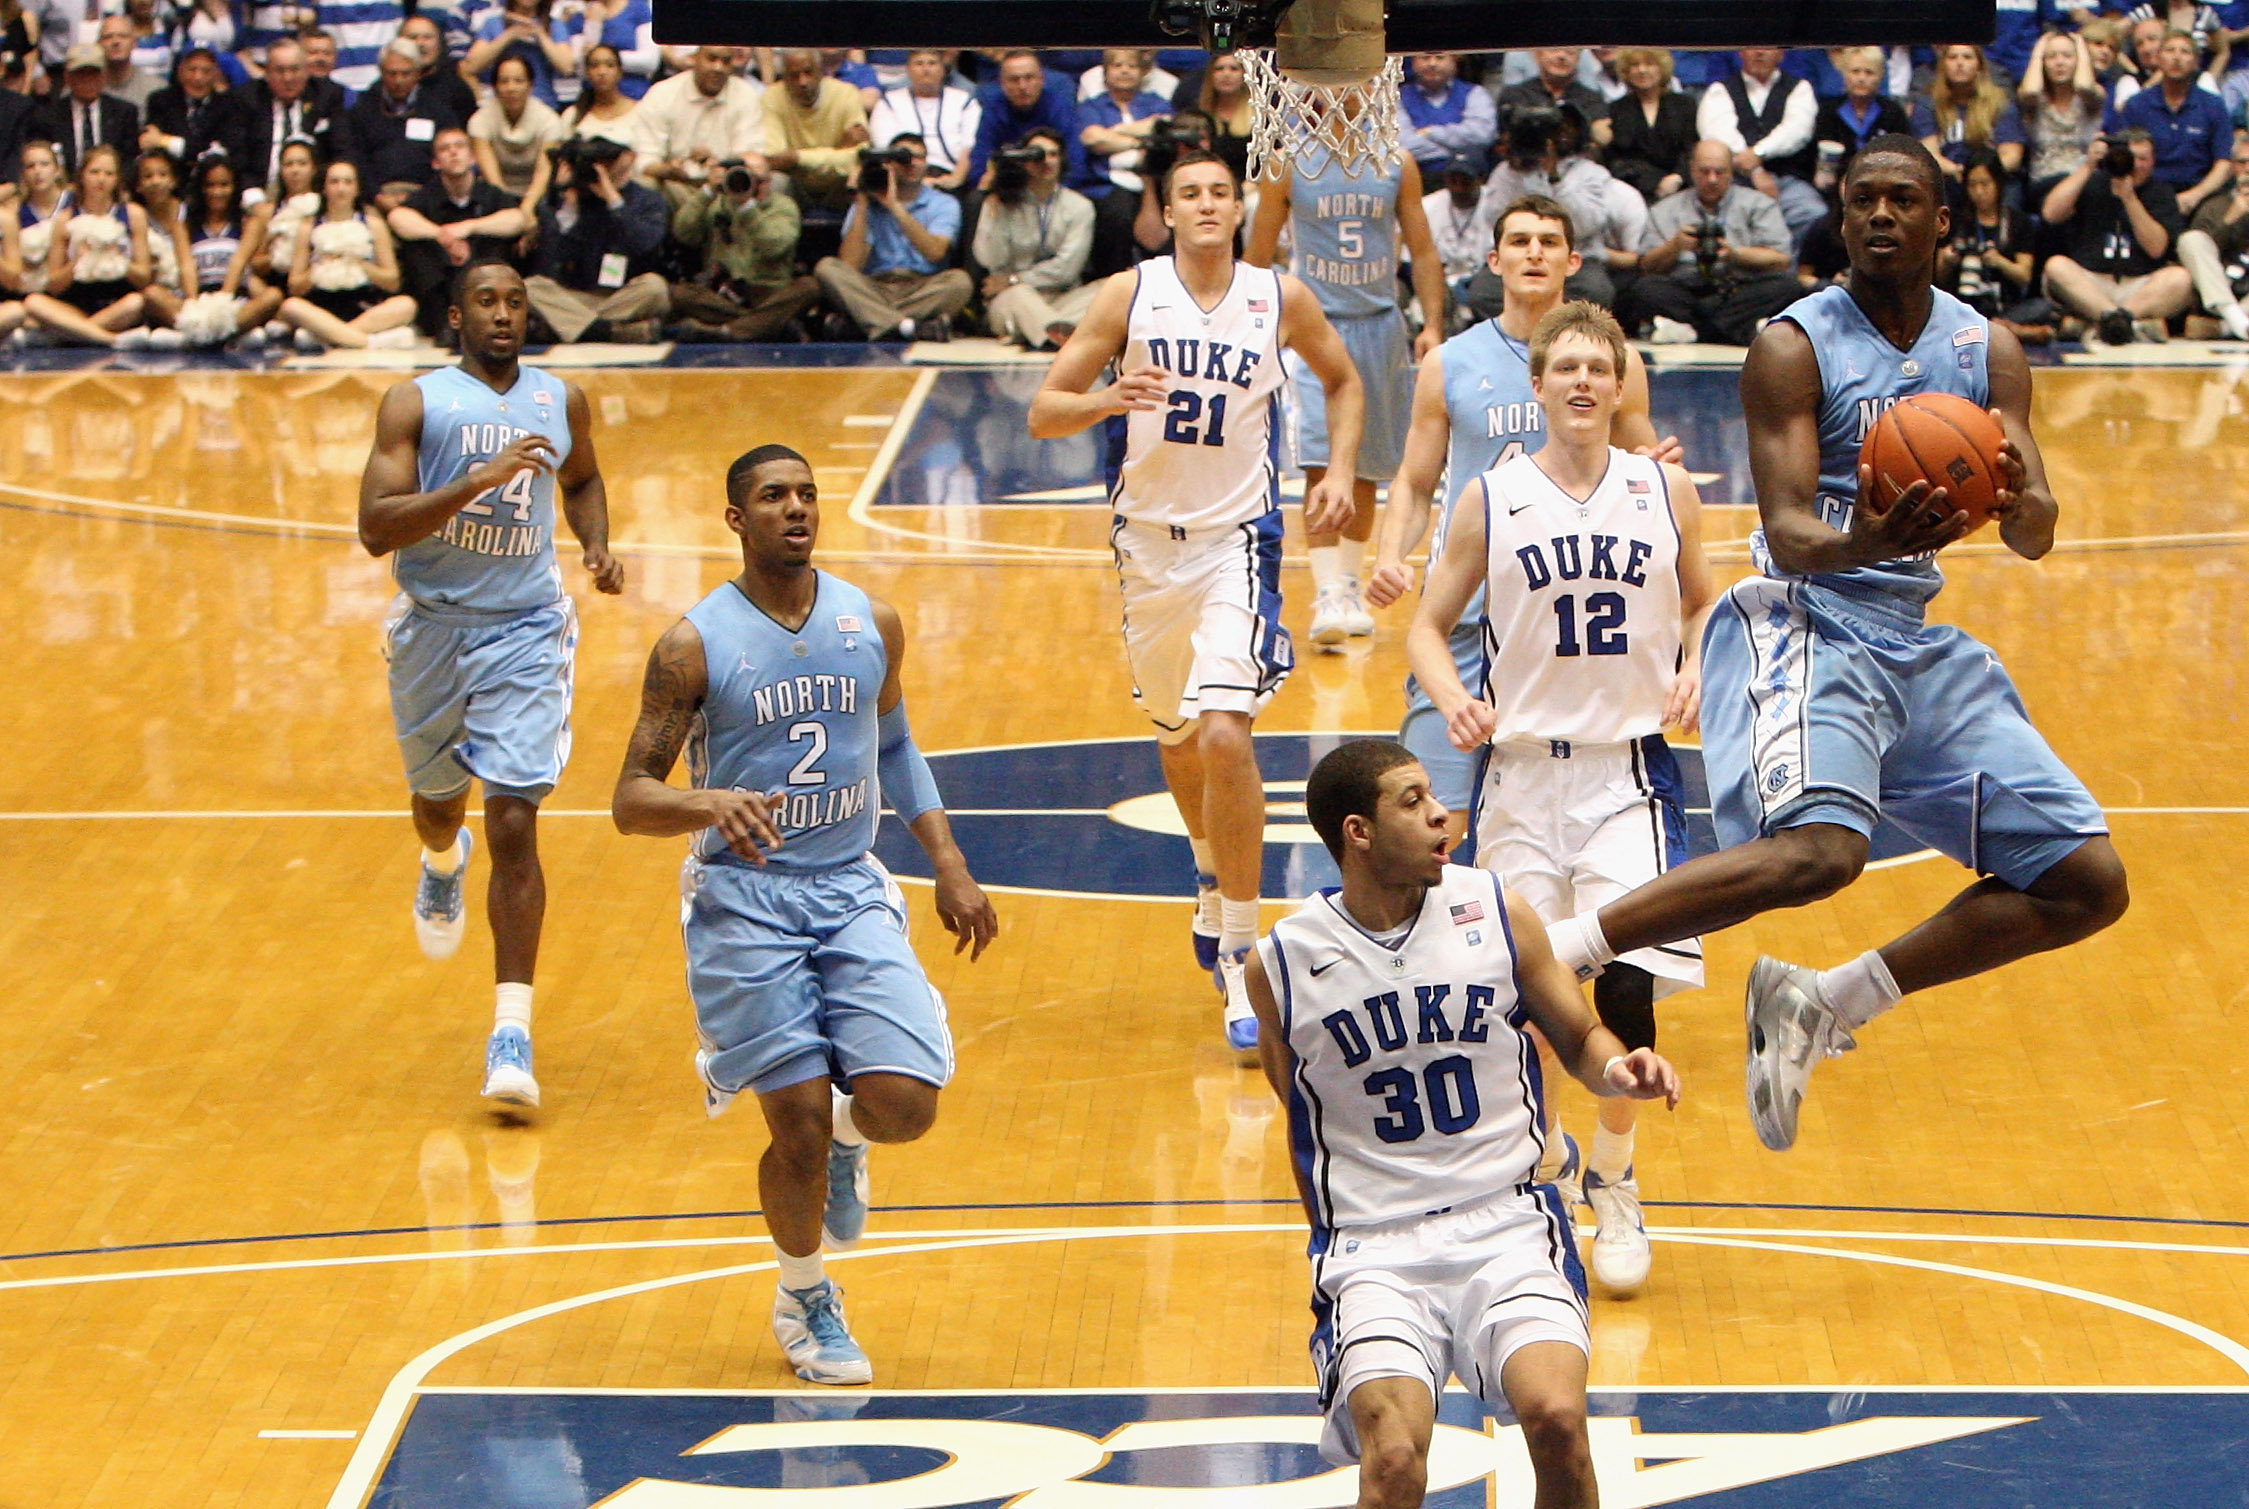 DURHAM, NC - FEBRUARY 09:  Harrison Barnes #40 of the North Carolina Tar Heels drives to the basket against Seth Curry #30 of the Duke Blue Devils during their game at Cameron Indoor Stadium on February 9, 2011 in Durham, North Carolina.  (Photo by Street